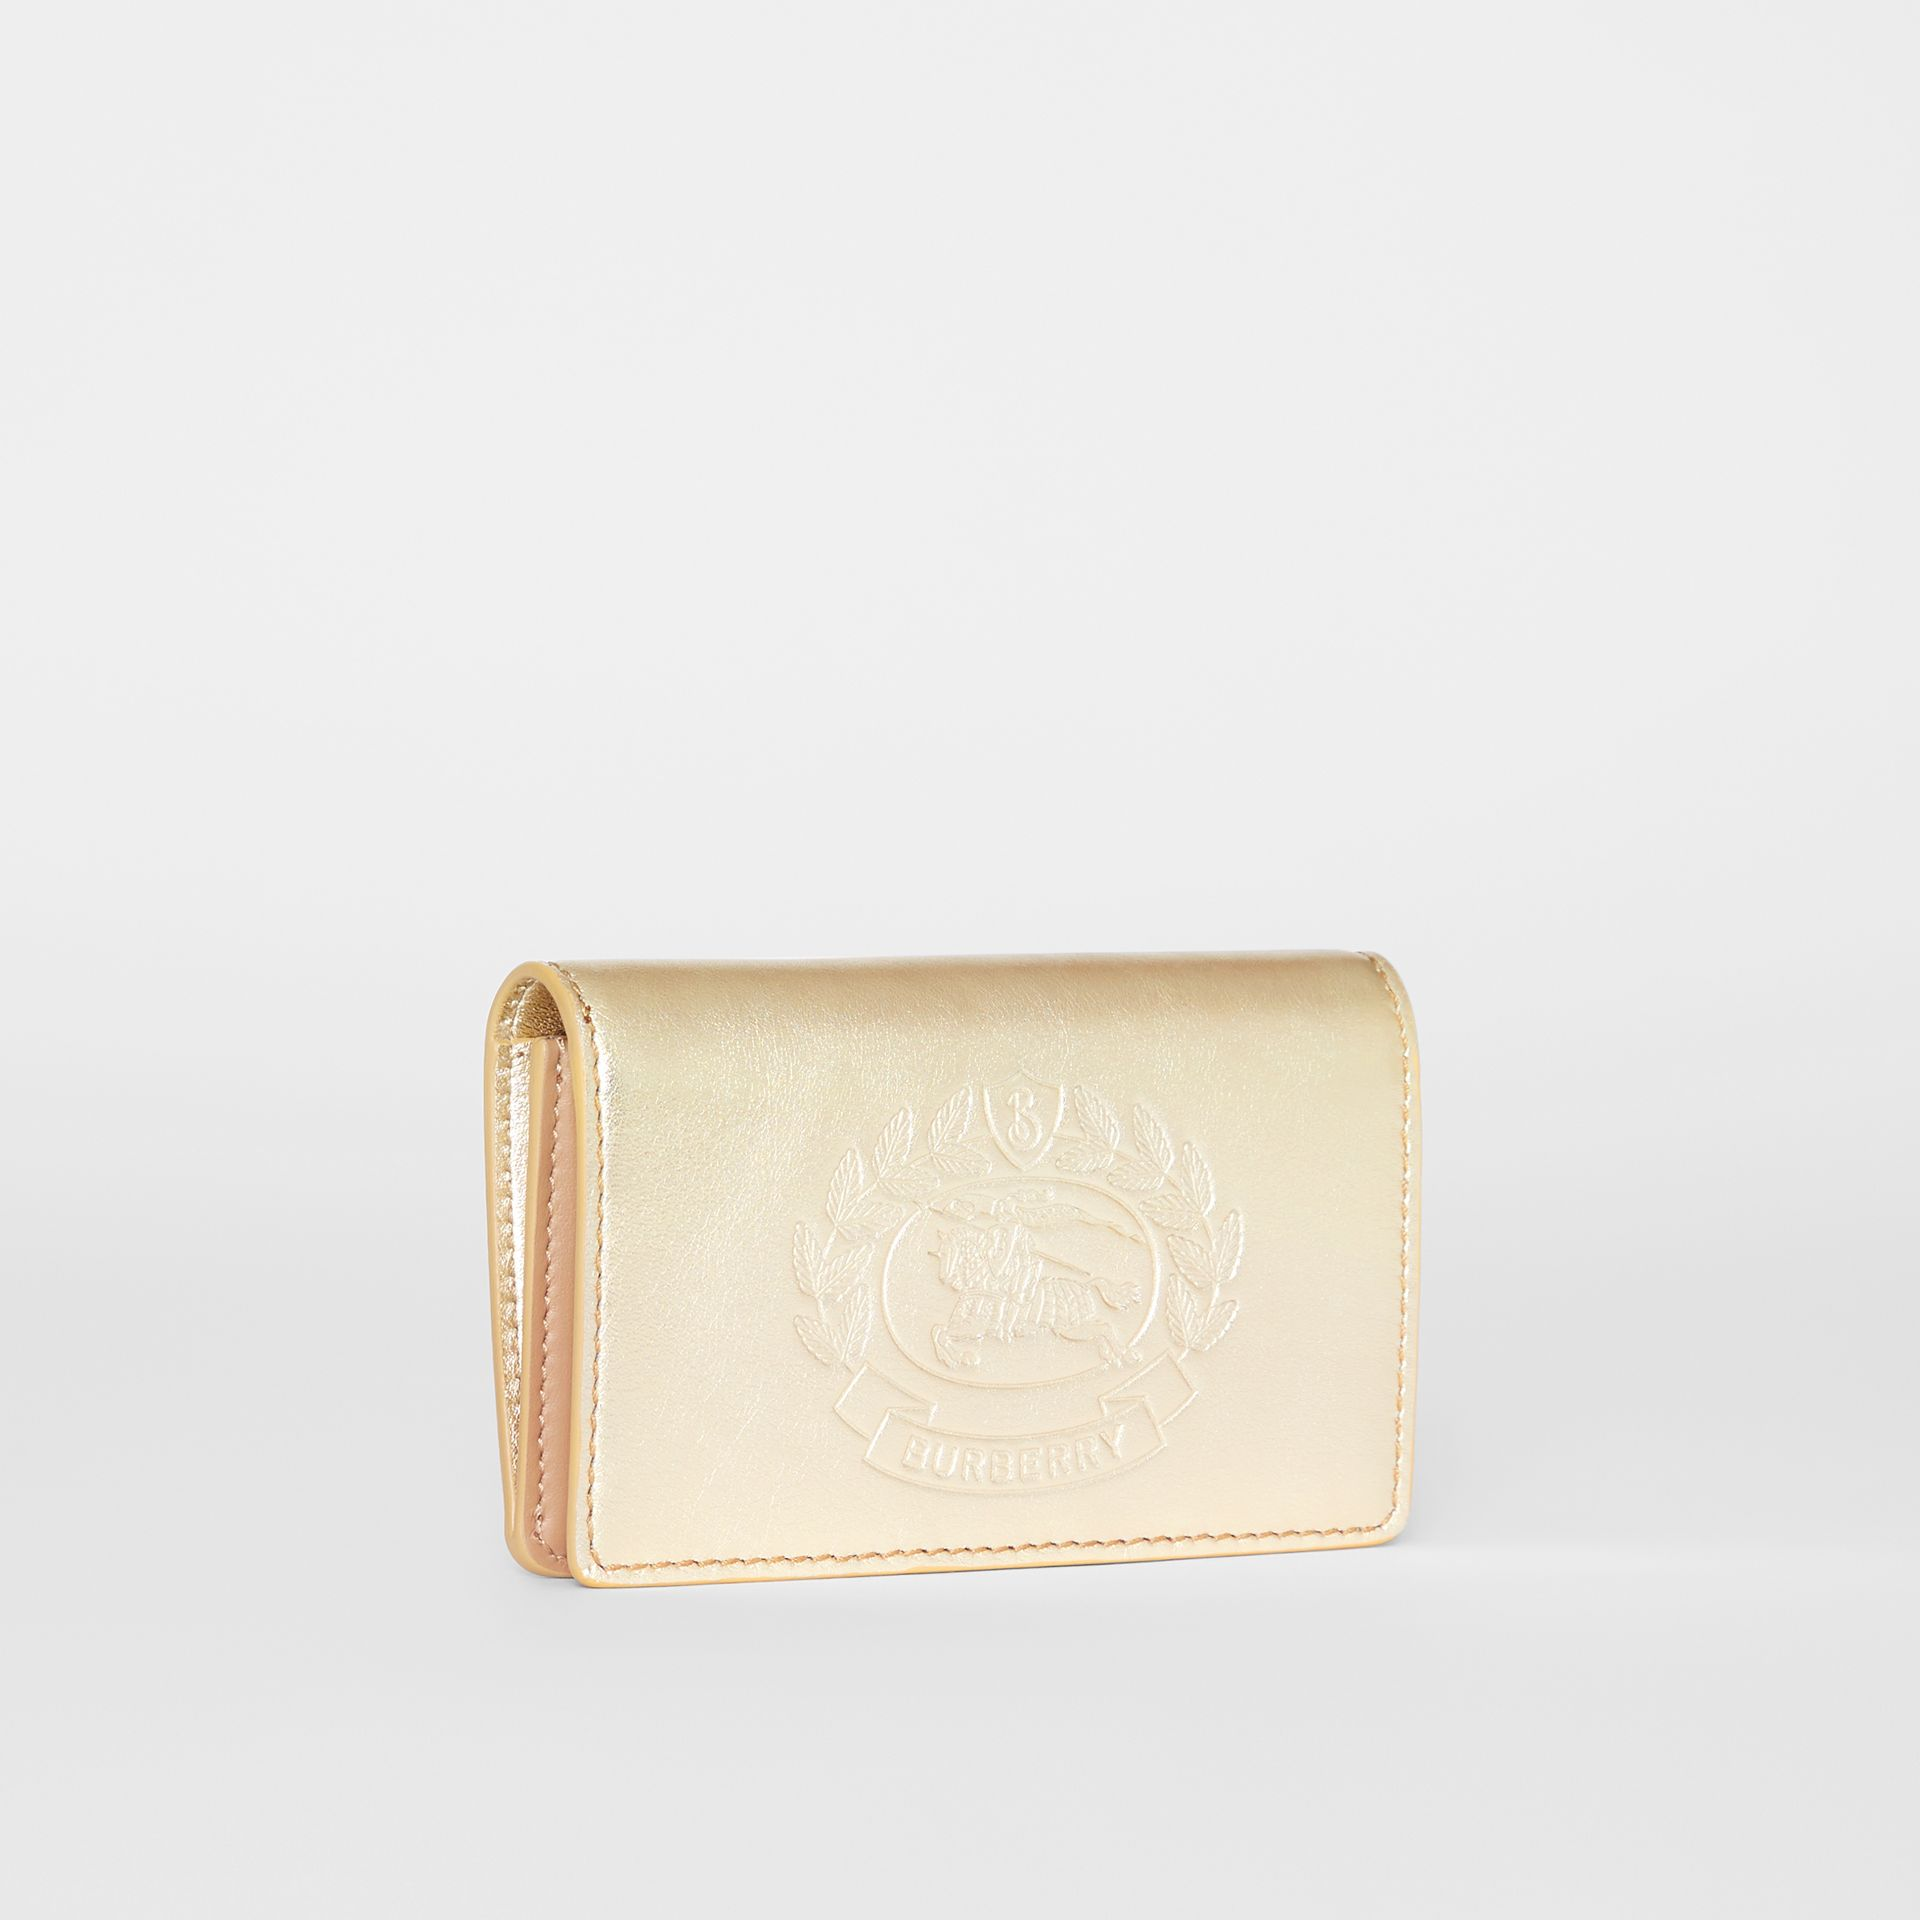 Small Embossed Crest Metallic Leather Wallet in Gold - Women | Burberry - gallery image 4